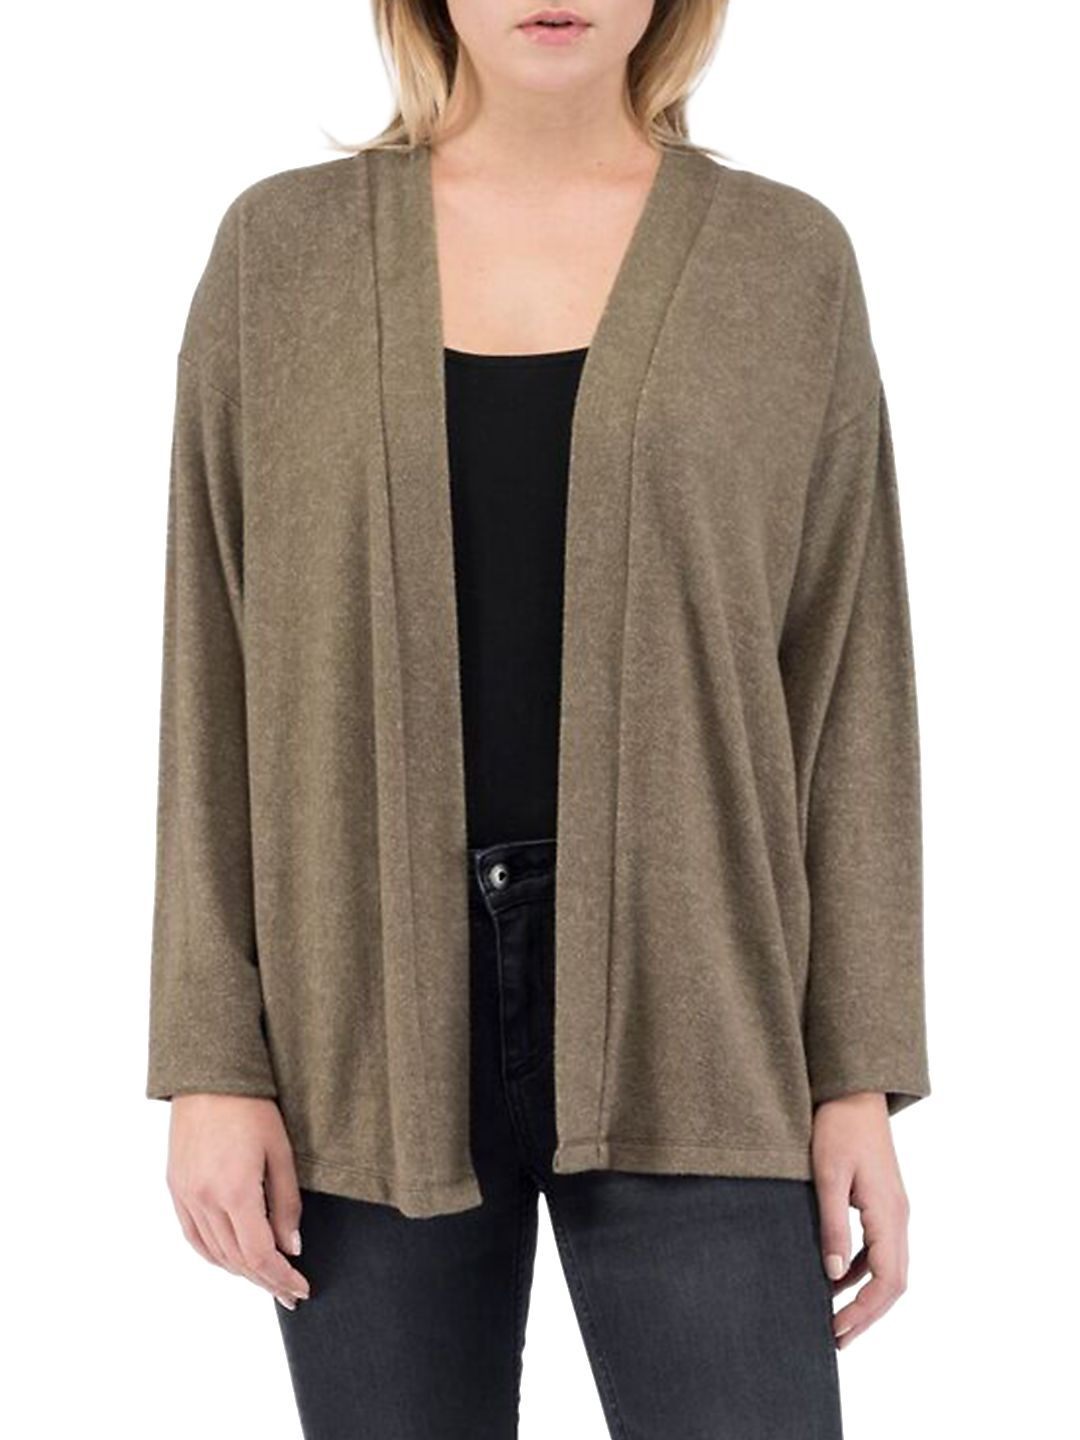 Adele Cinched-Back Cardigan